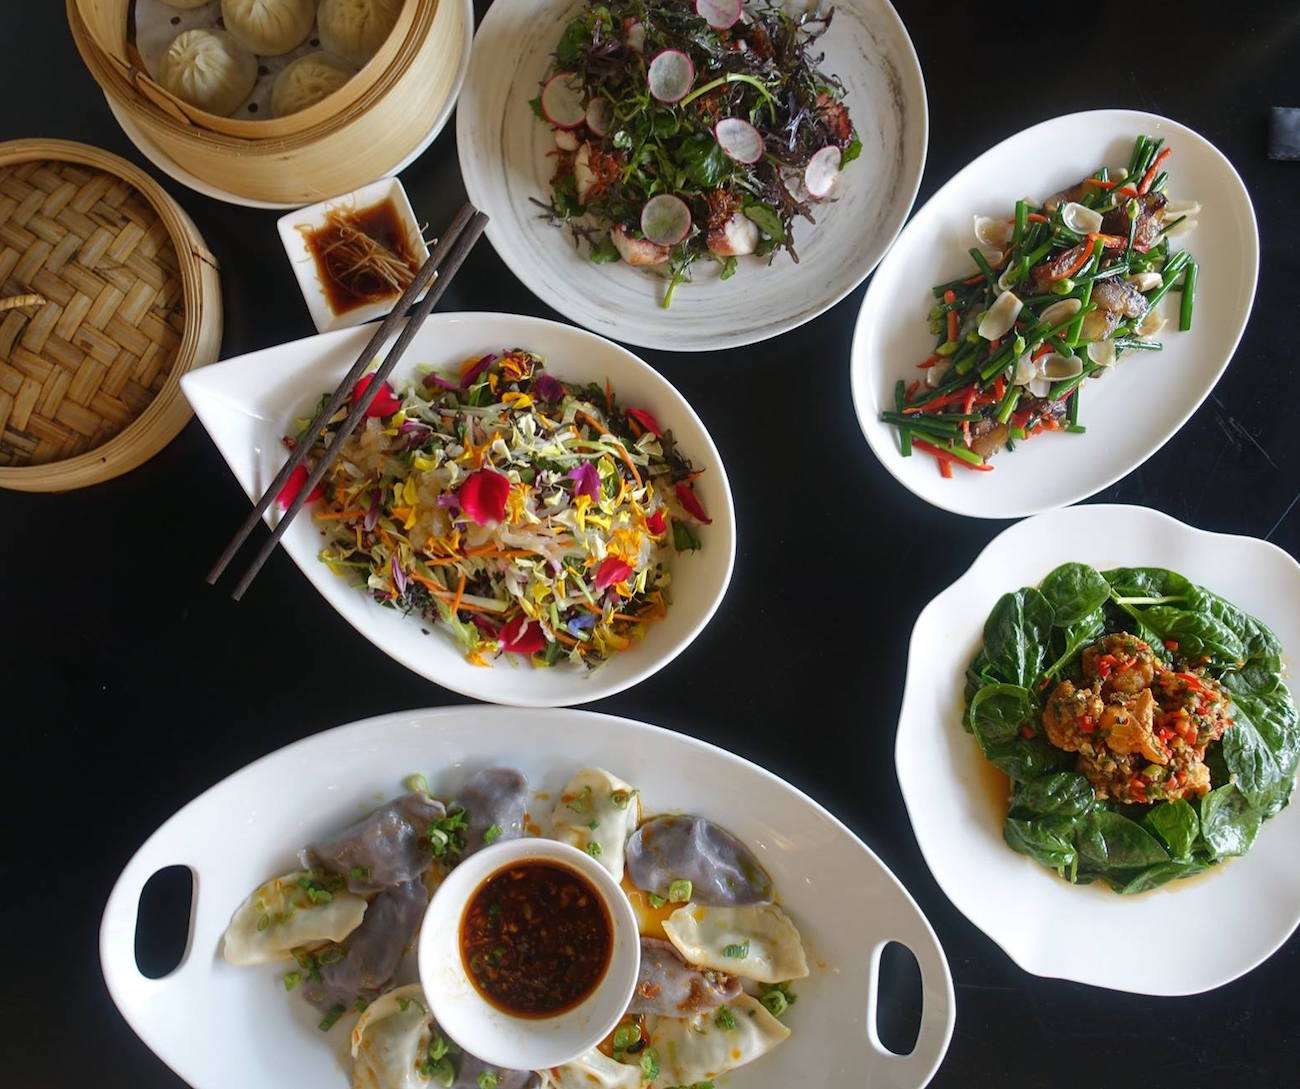 China Live offers a wide variety of Asian cuisine